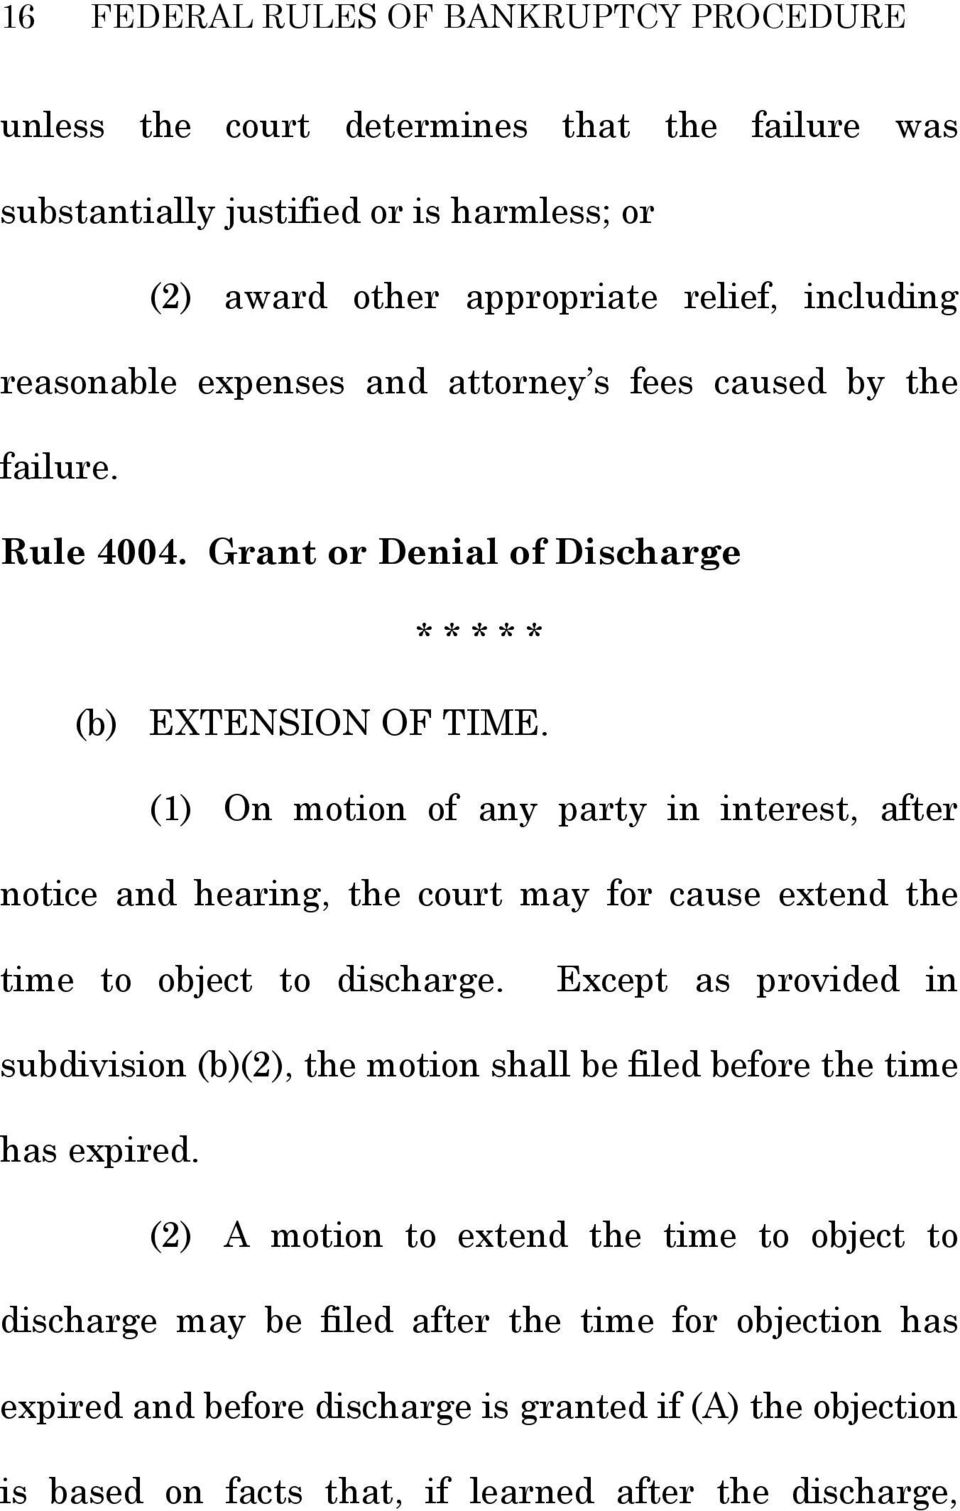 (1) On motion of any party in interest, after notice and hearing, the court may for cause extend the time to object to discharge.